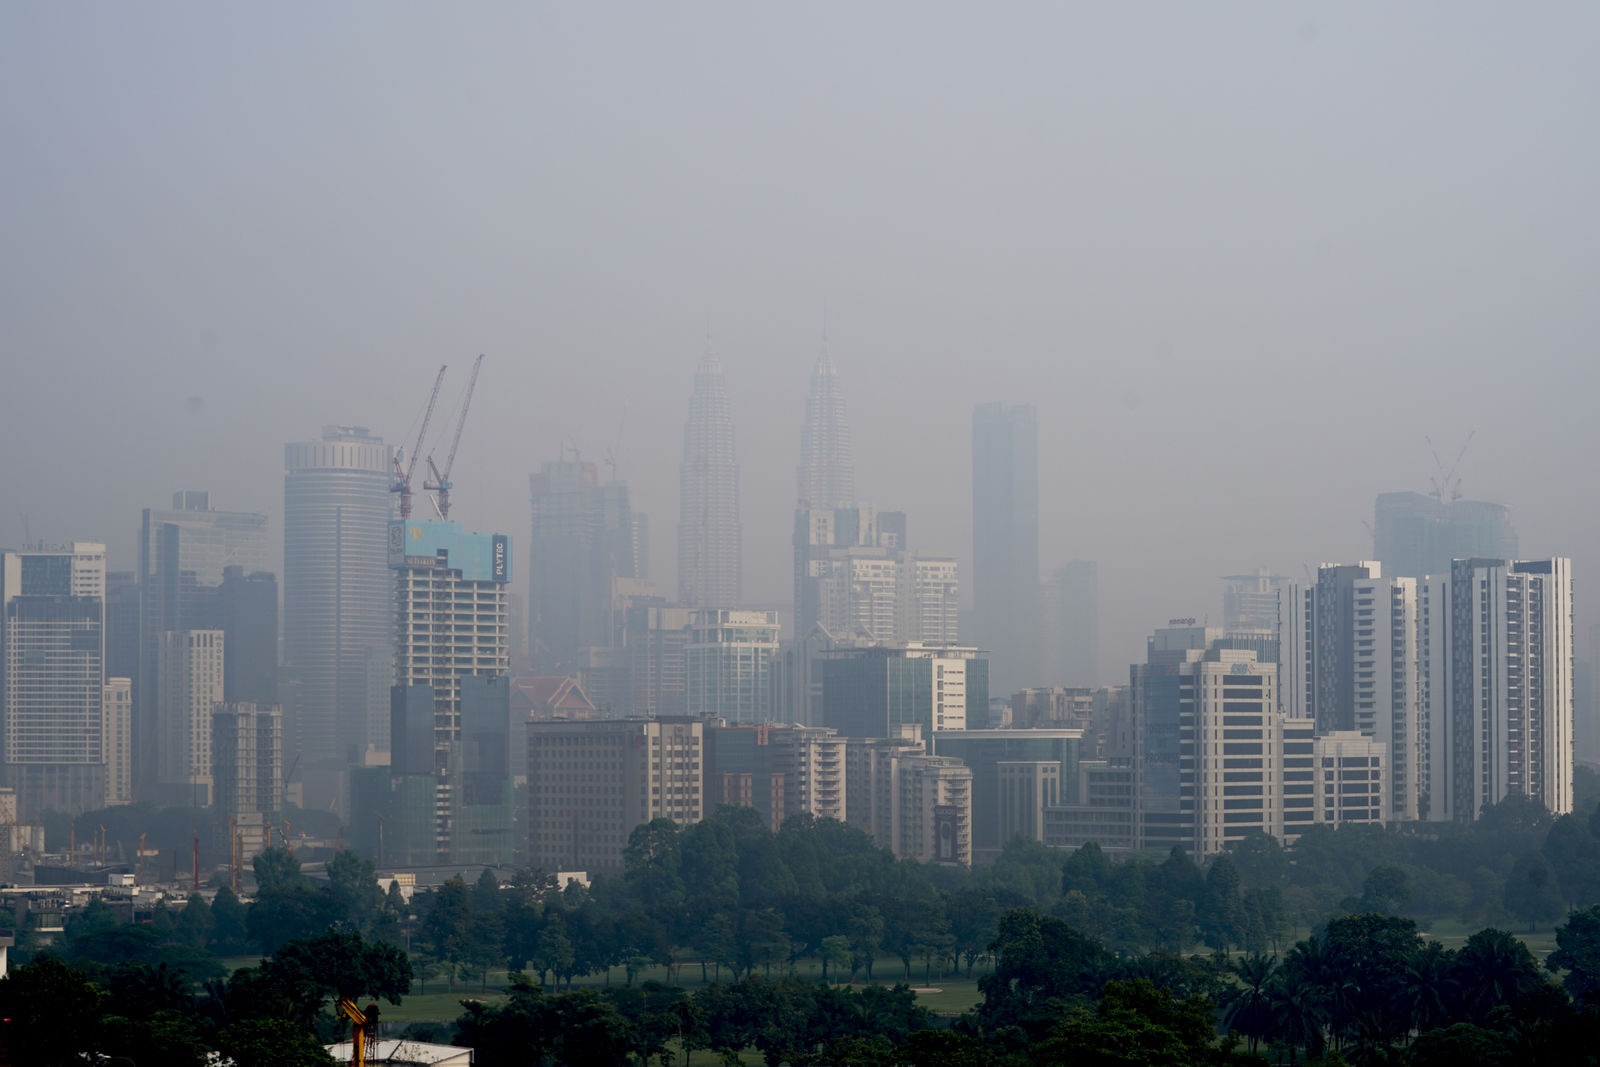 Kuala Lumpur city stands shrouded with haze in Kuala Lumpur, Malaysia, Tuesday, Sept. 17, 2019. More than 100 schools were closed Tuesday after the air quality in the area continued to trend at very unhealthy levels. (AP Photo/Vincent Thian)